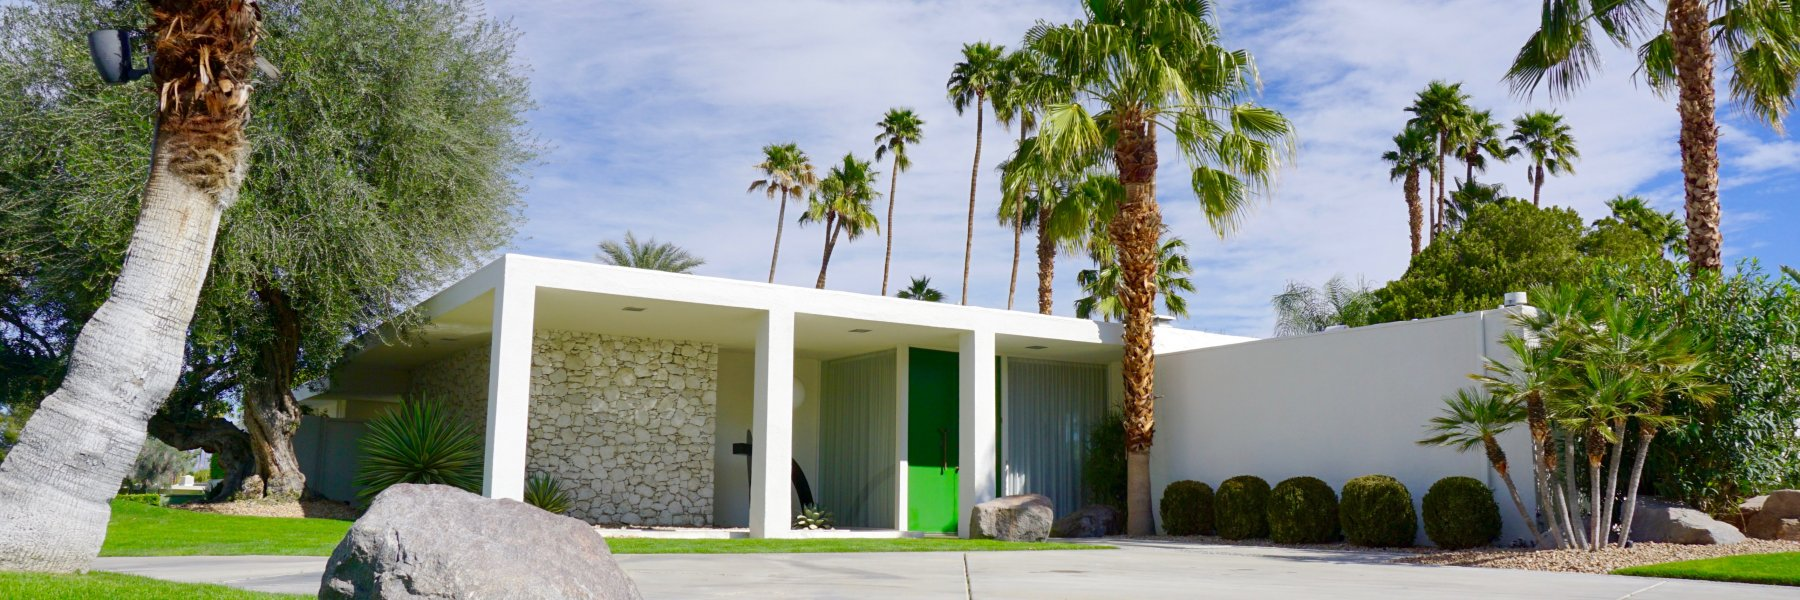 Indian Canyons is a community of homes in Palm Springs California